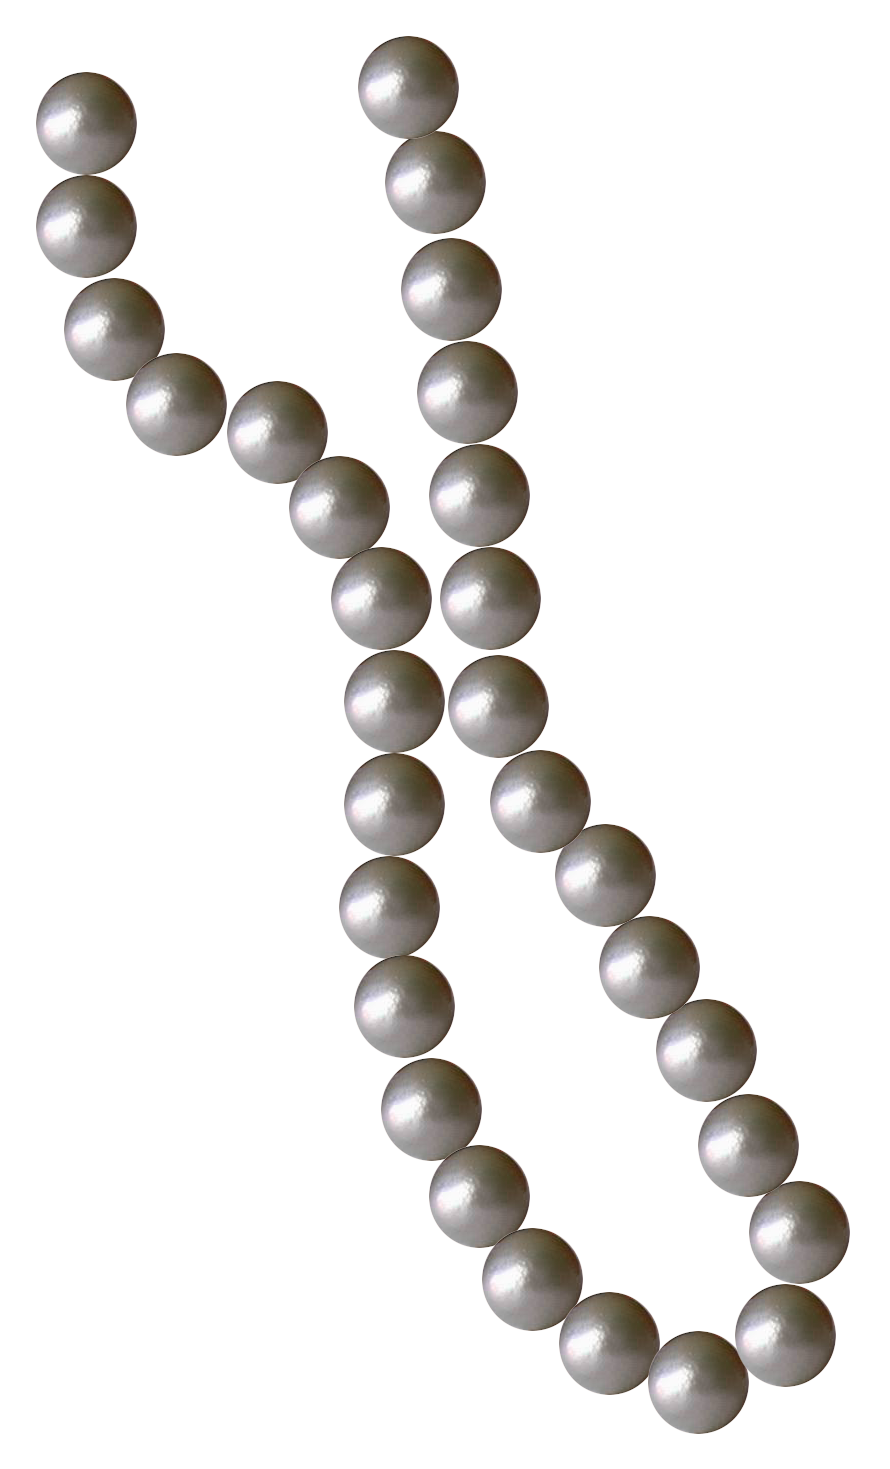 Pearls clipart mala. Png images free download